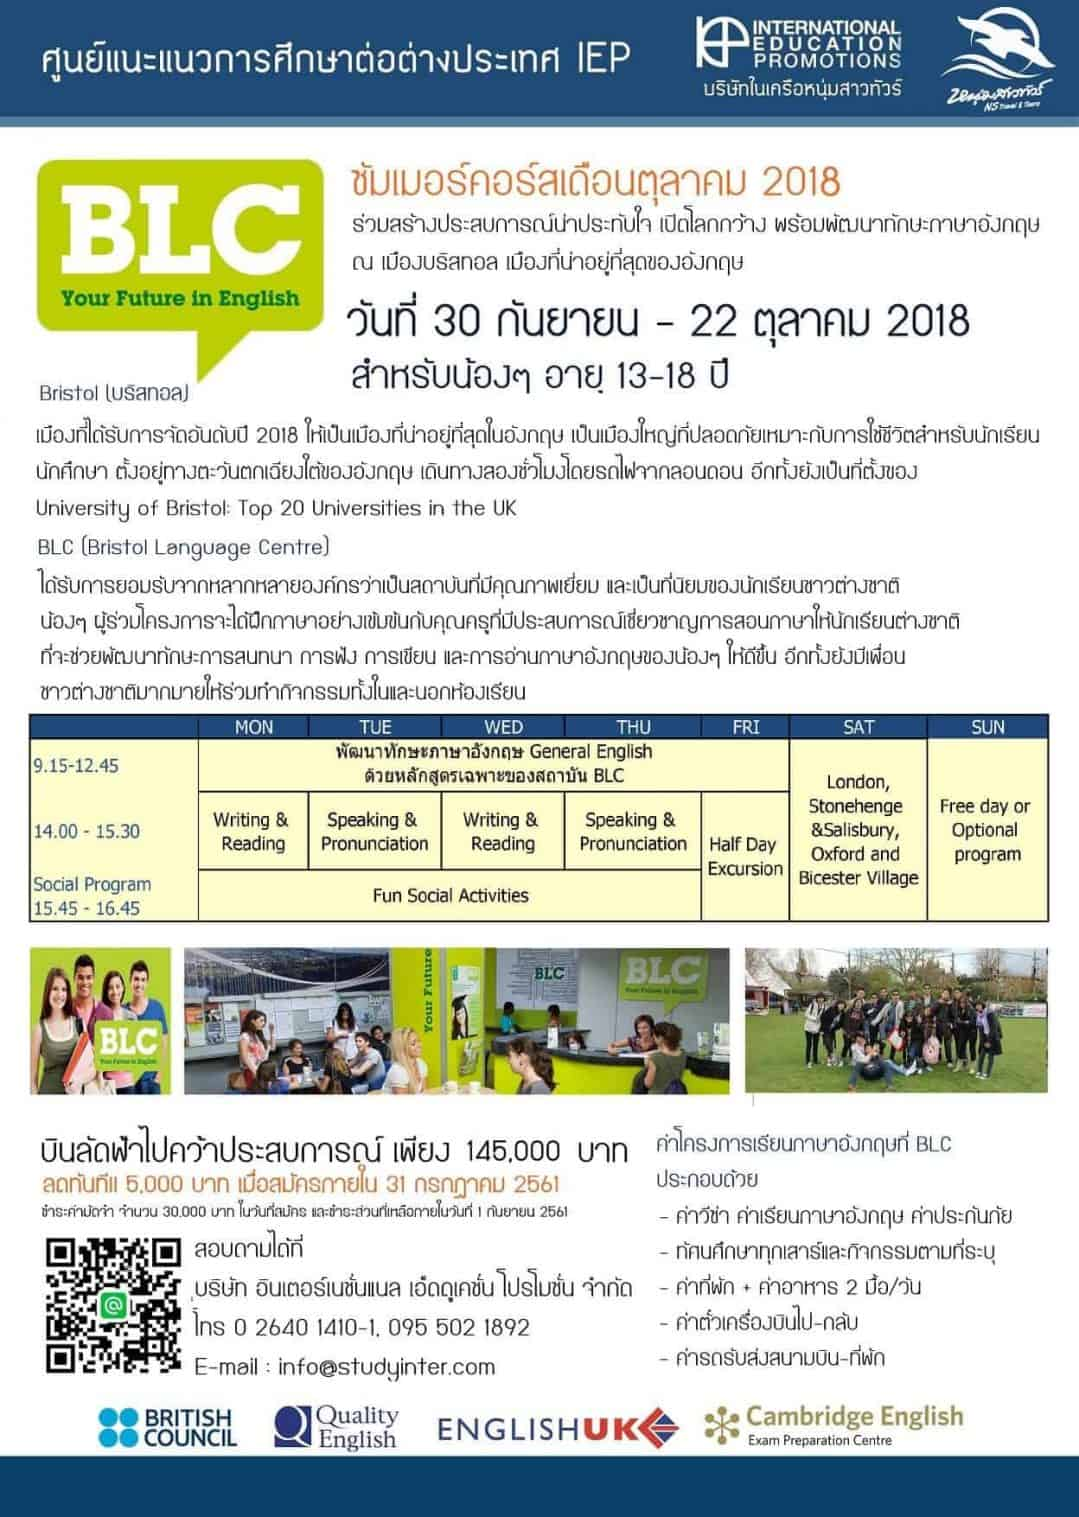 Bristol Language Centre-Program of BLC English Summer Camp in UK